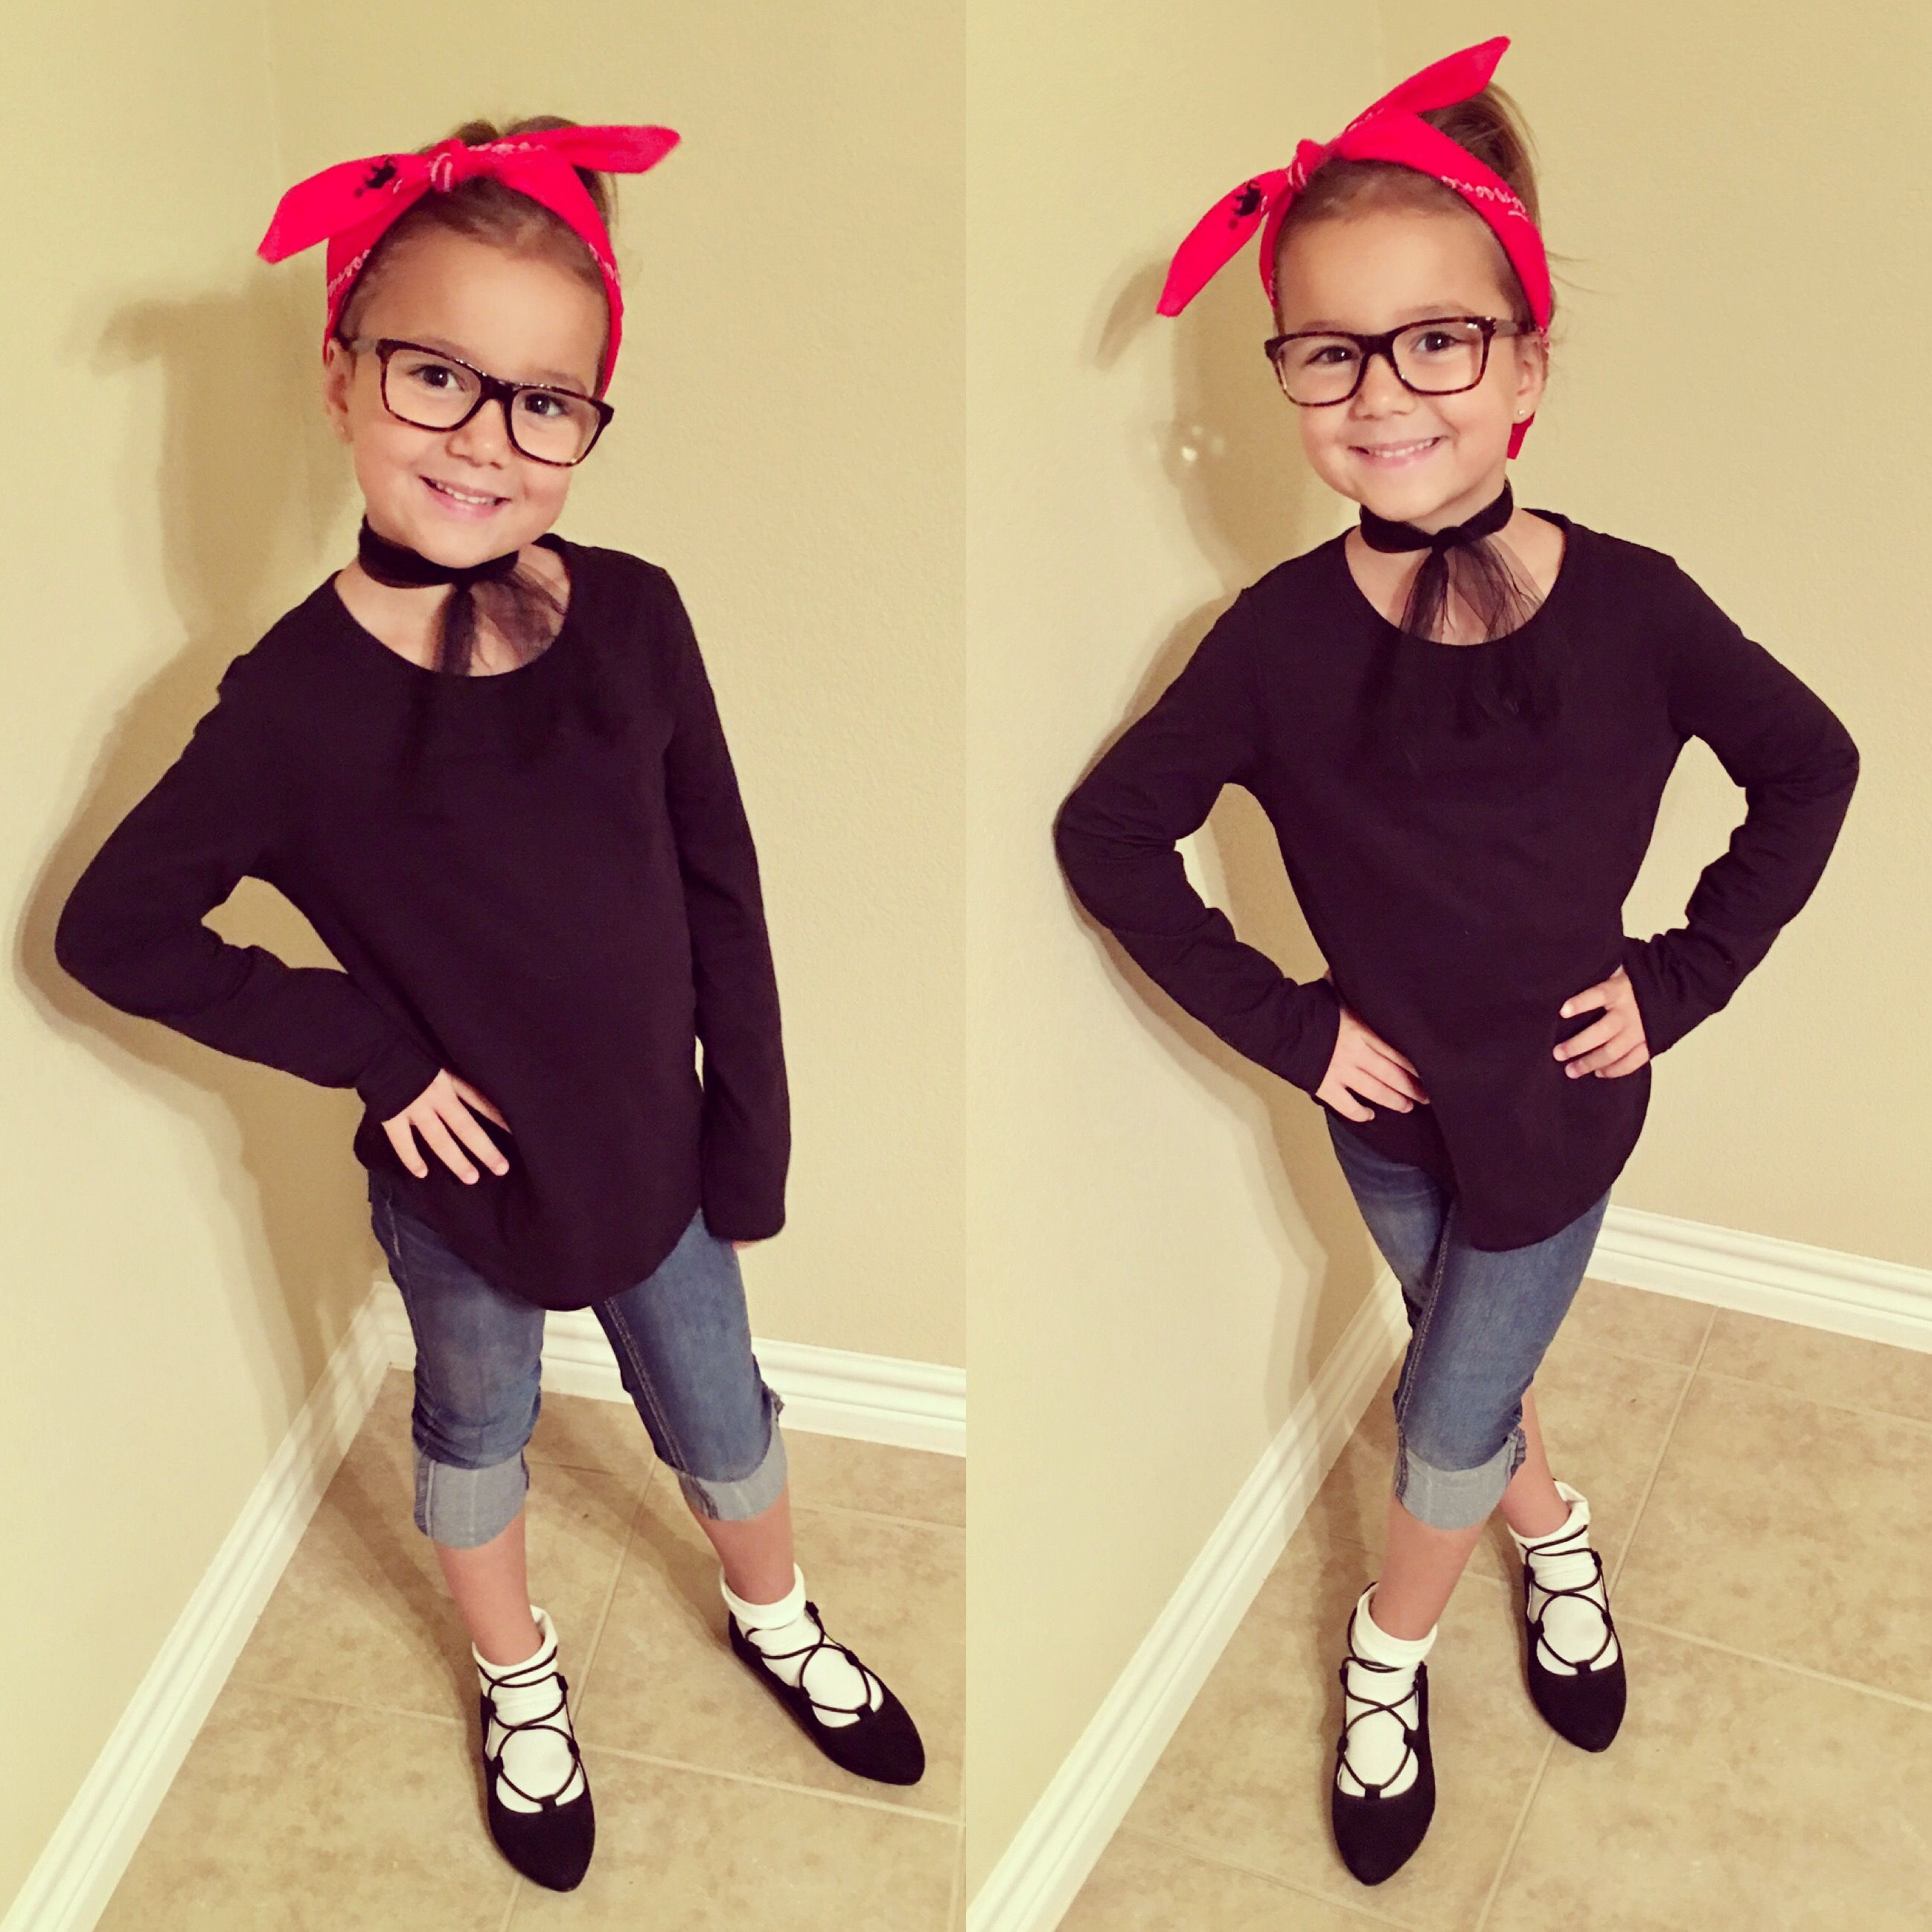 16b2c0318ab8 50s day at school | Aubrey's School Outfits✏ in 2019 | Kids 50s ...